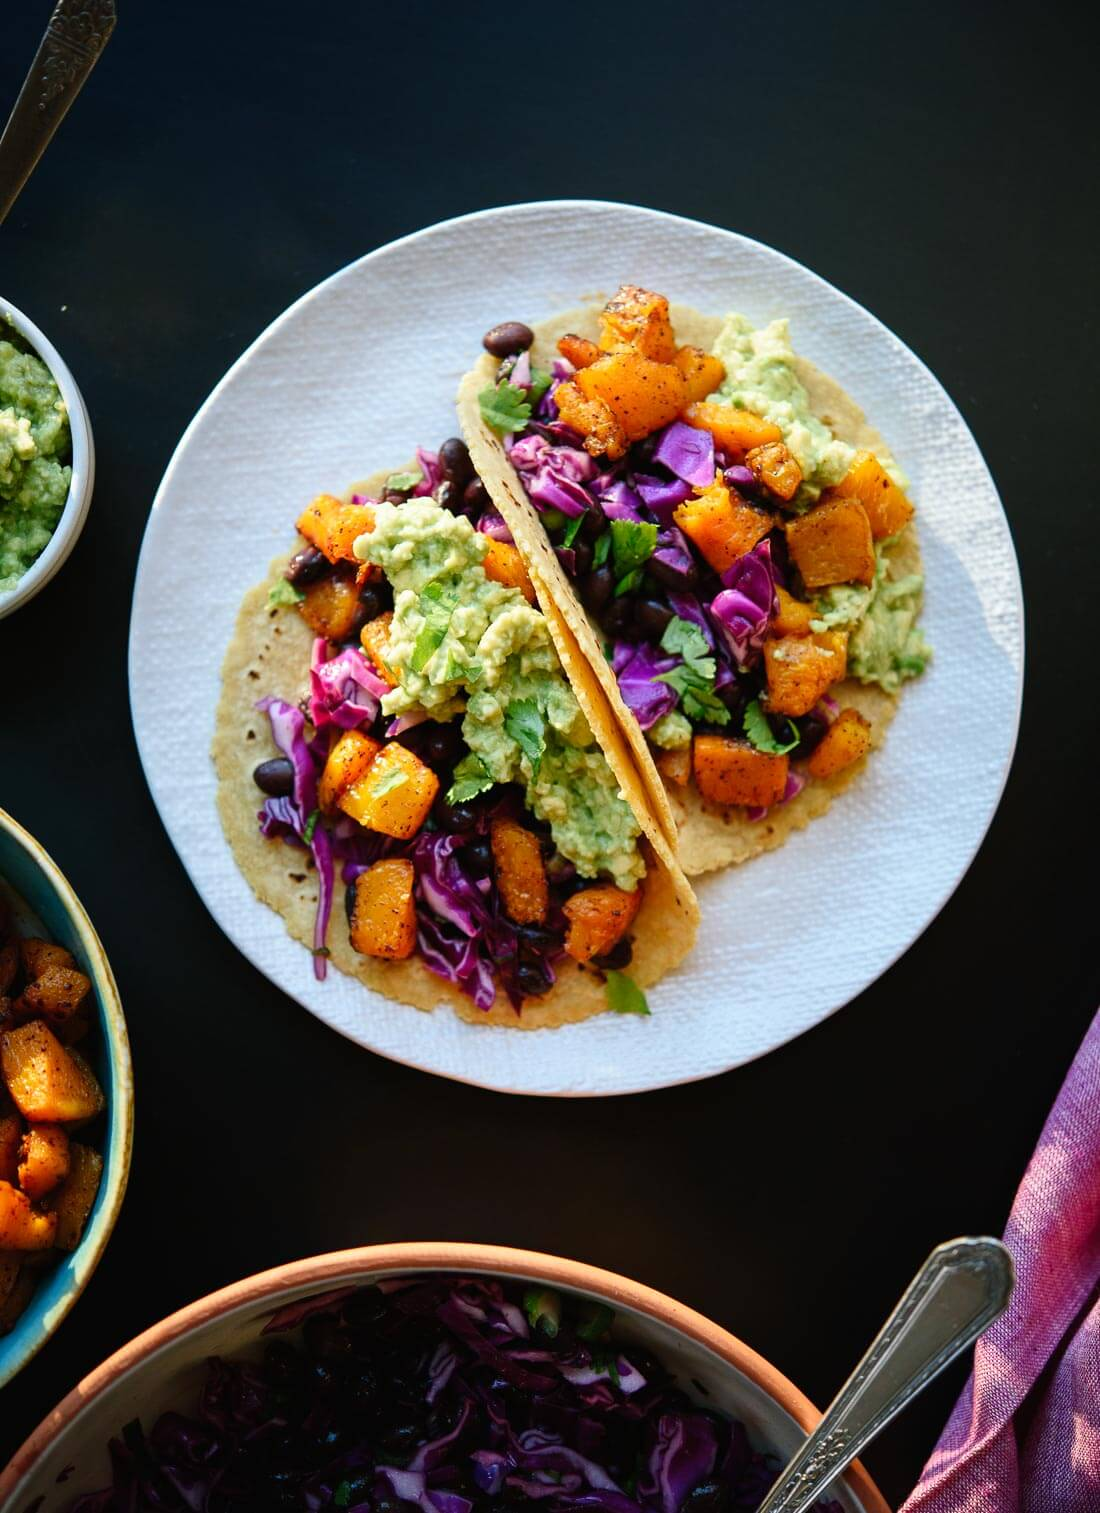 Roasted butternut squash tacos with guacamole! Vegan and gluten free. cookieandkate.com